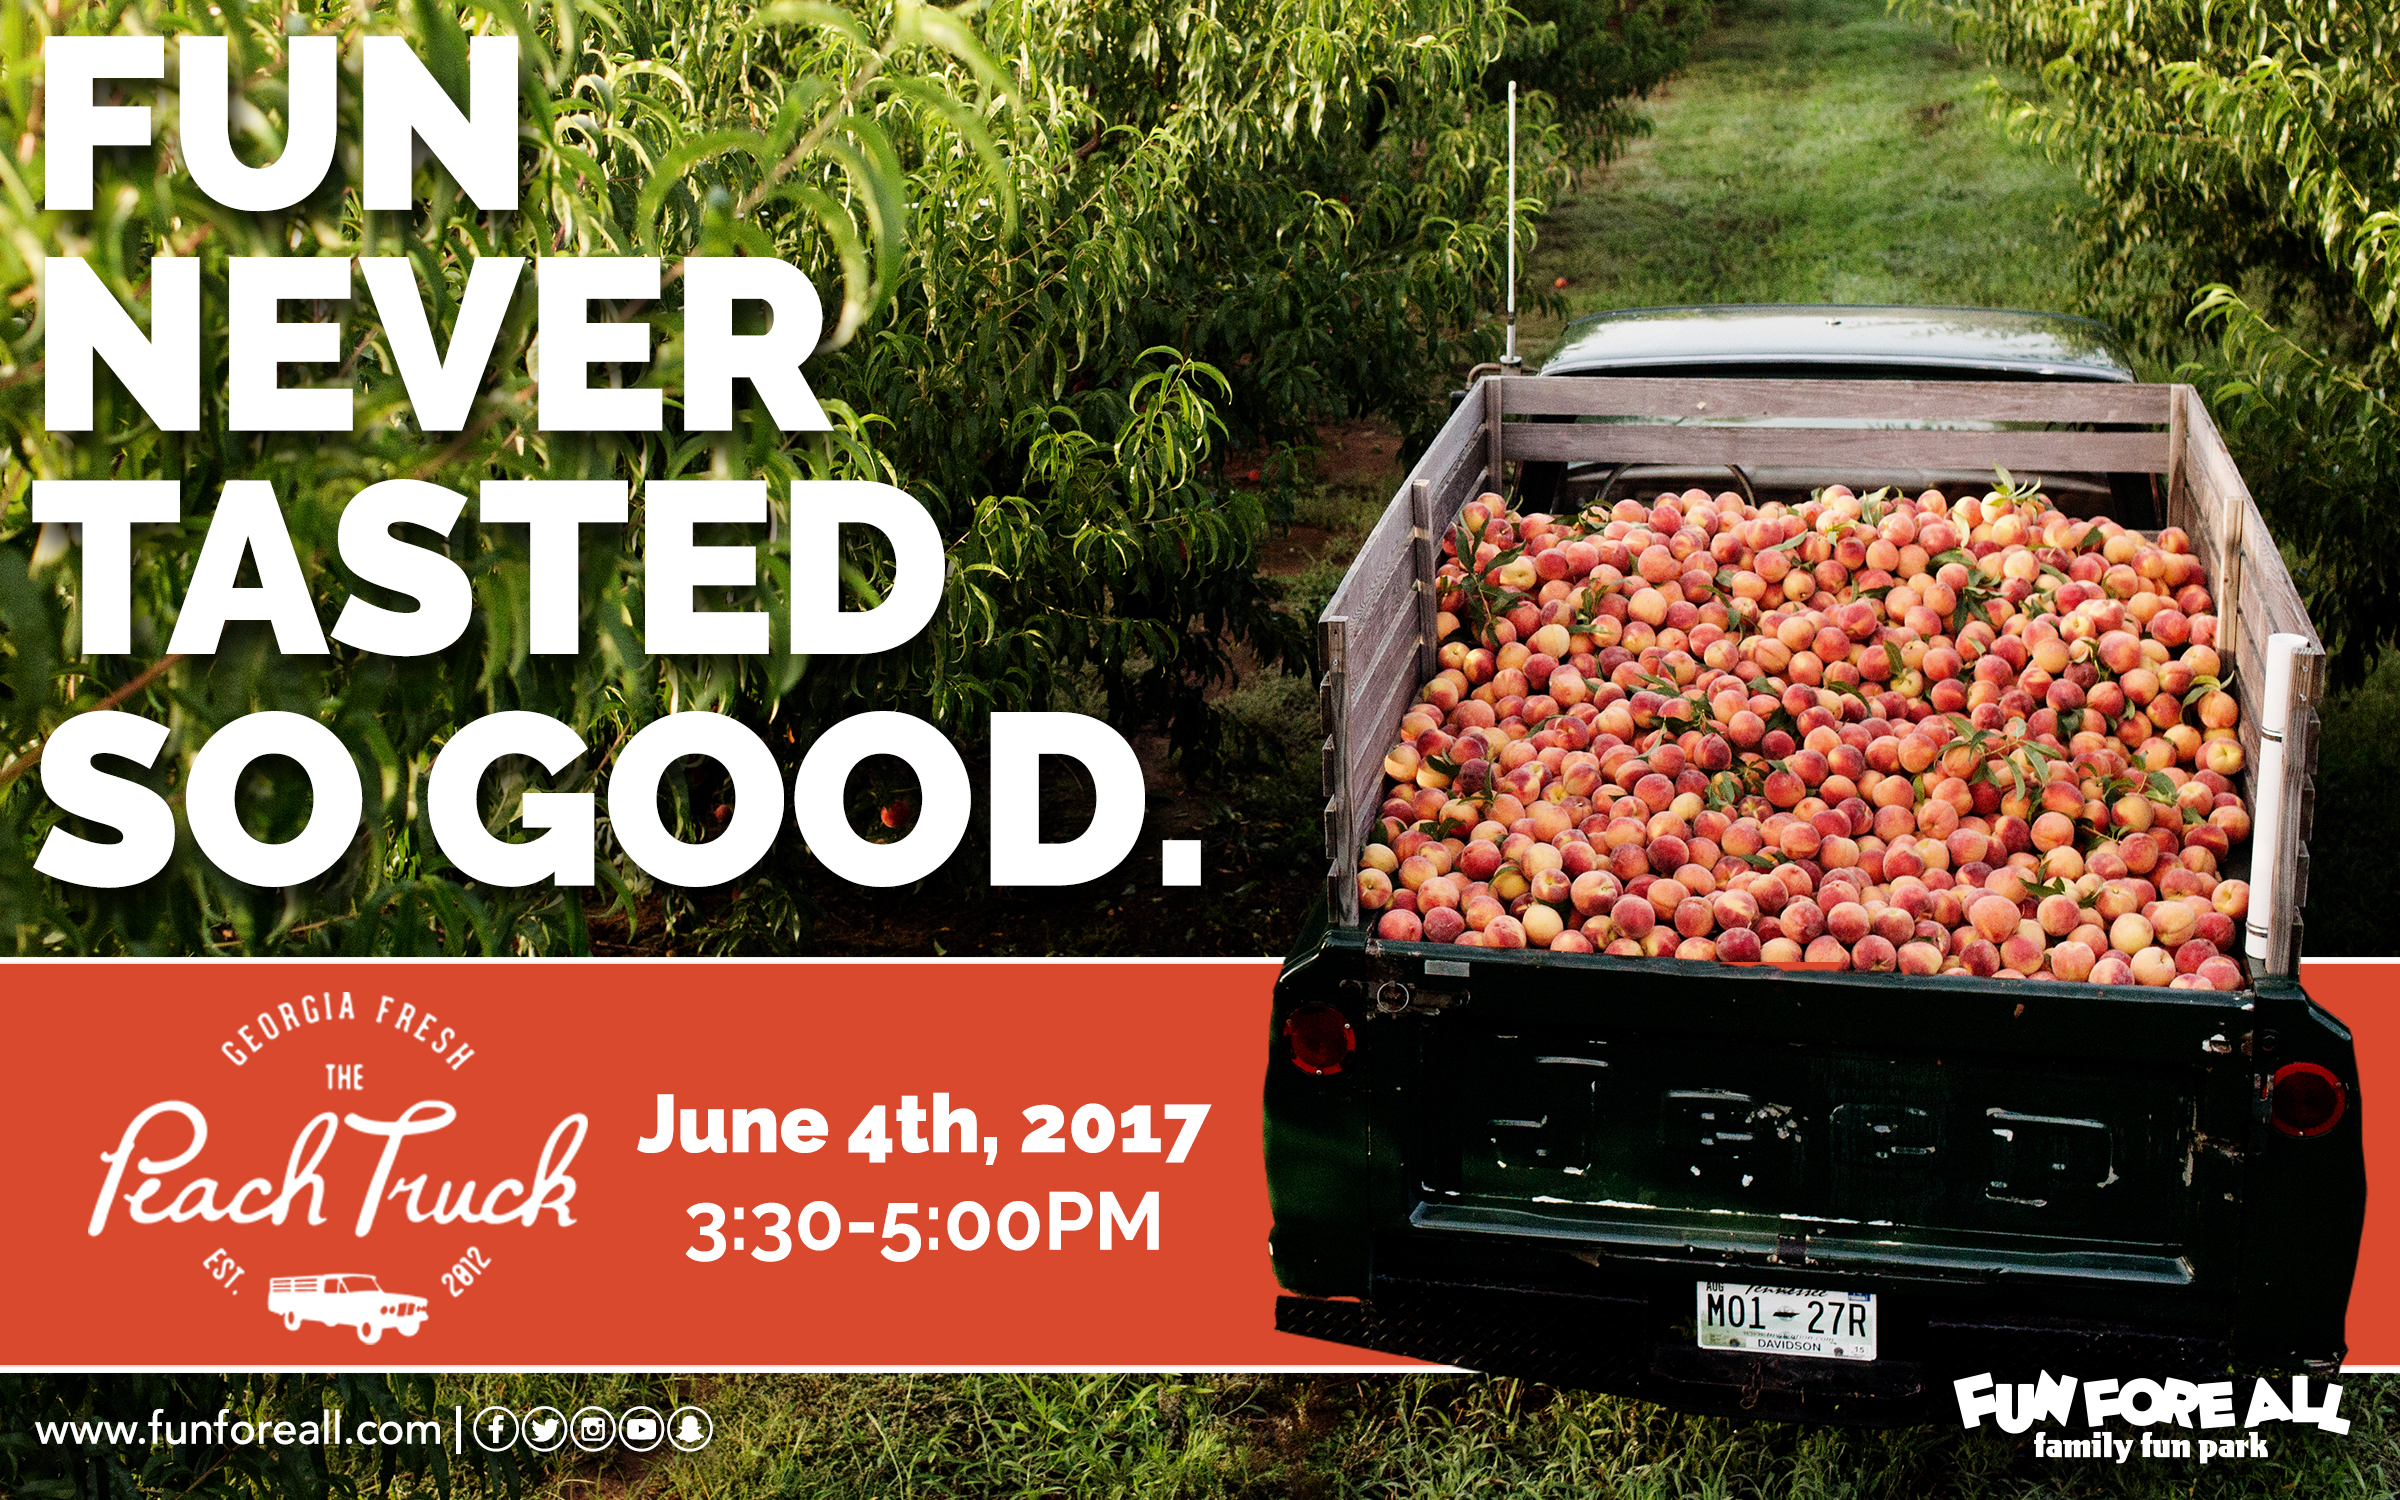 PEACH TRUCK EVENT FLYER